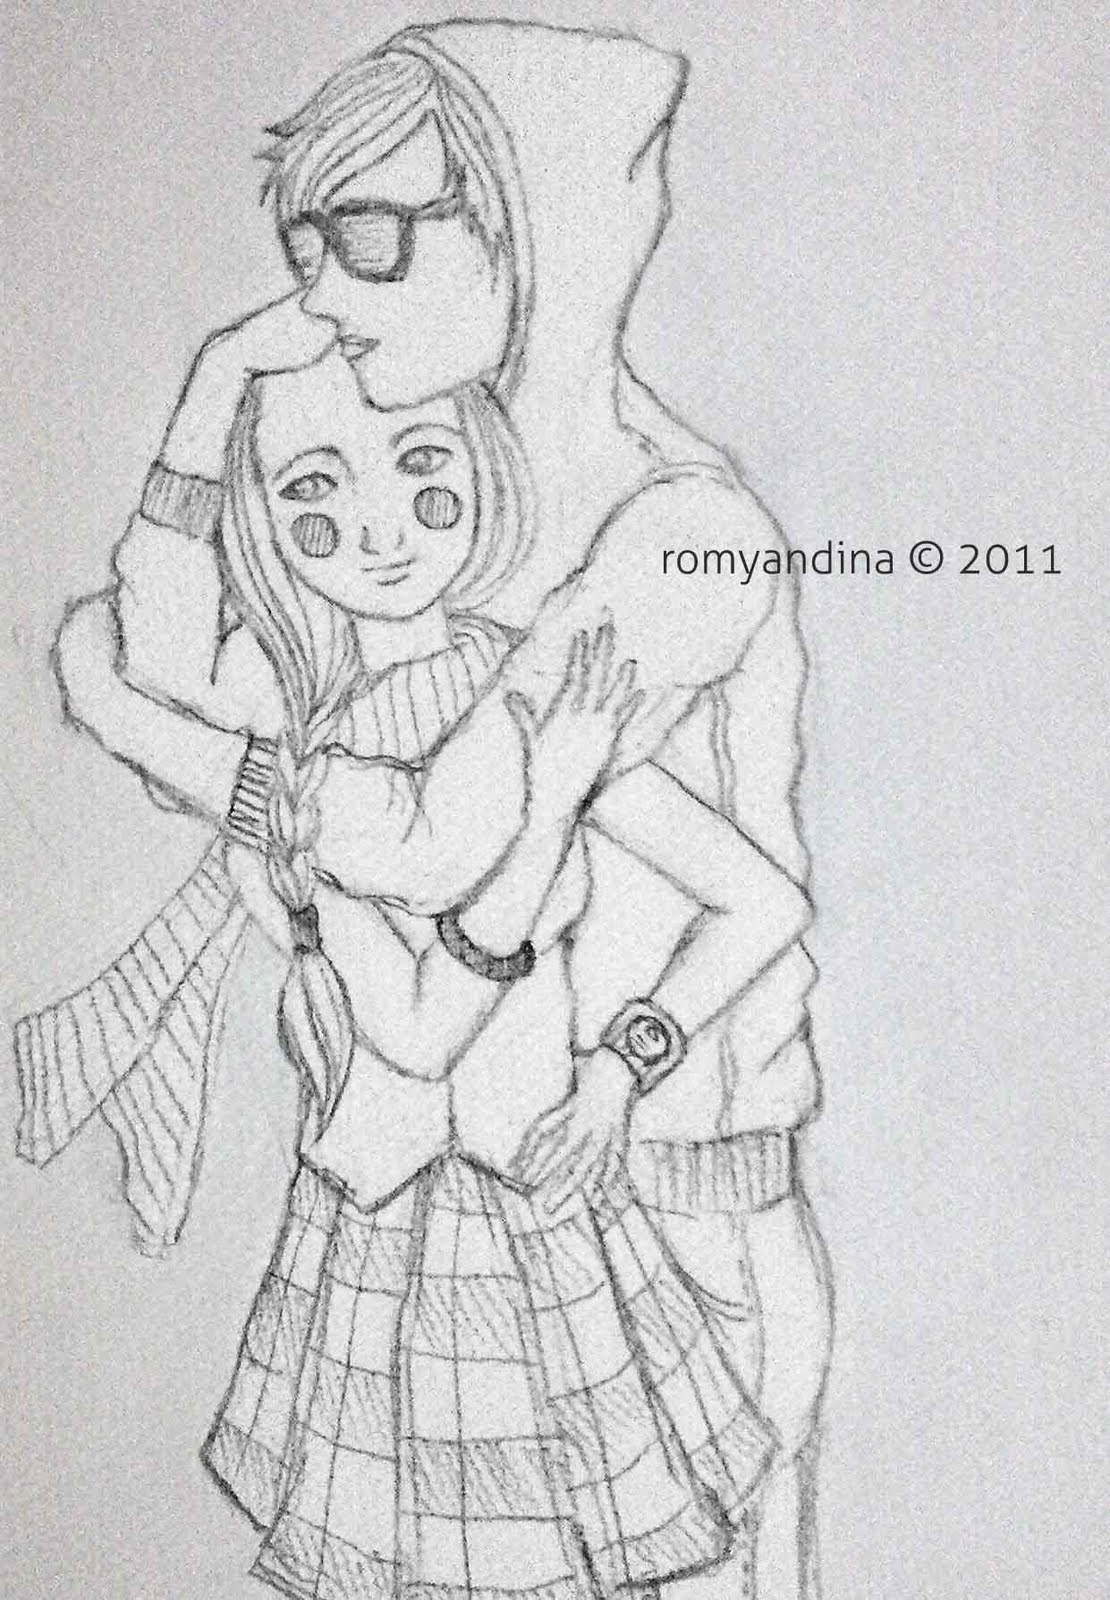 Boy hugging girl sketch boy hugging girl sketch boy